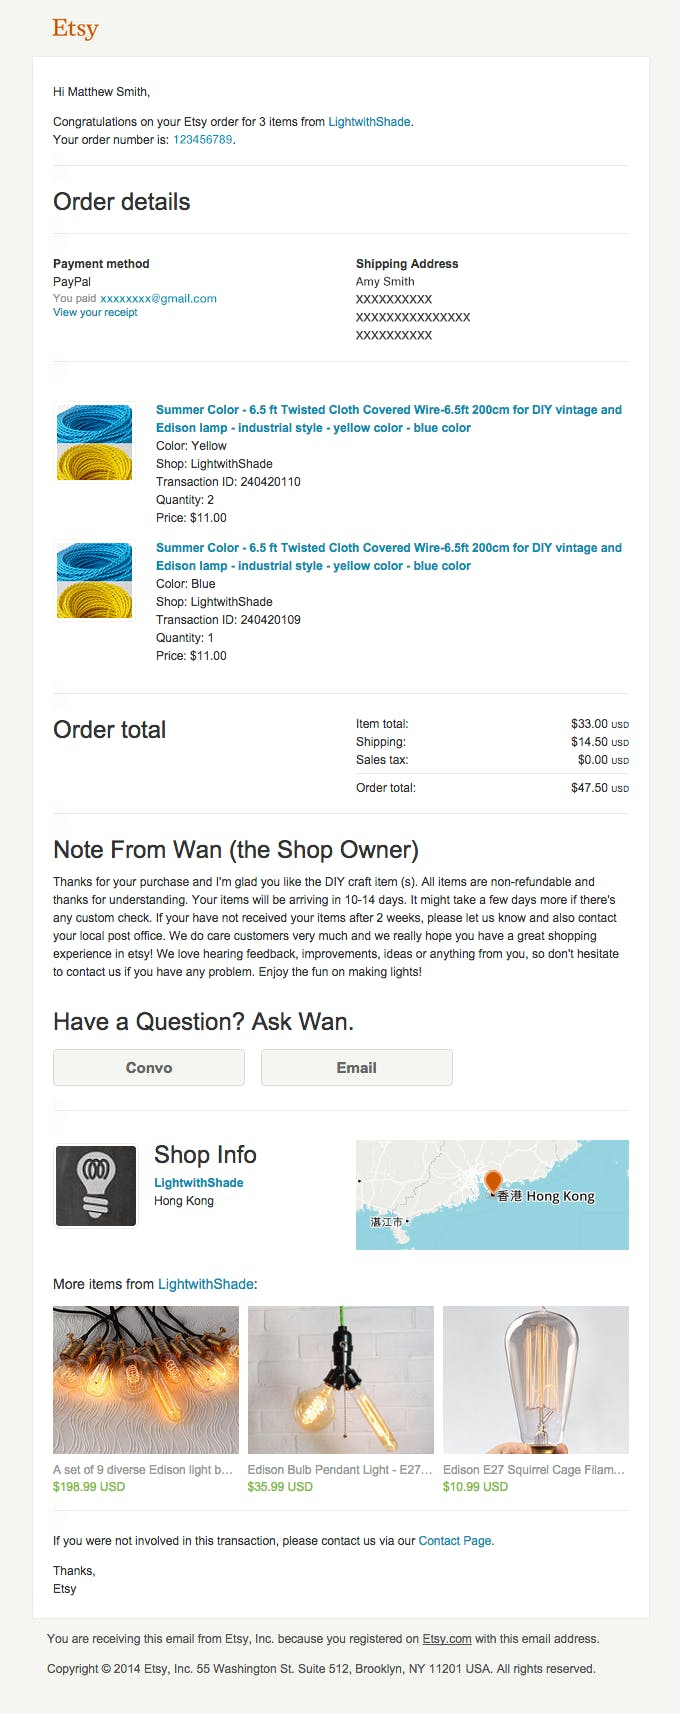 etsy transactional order email example